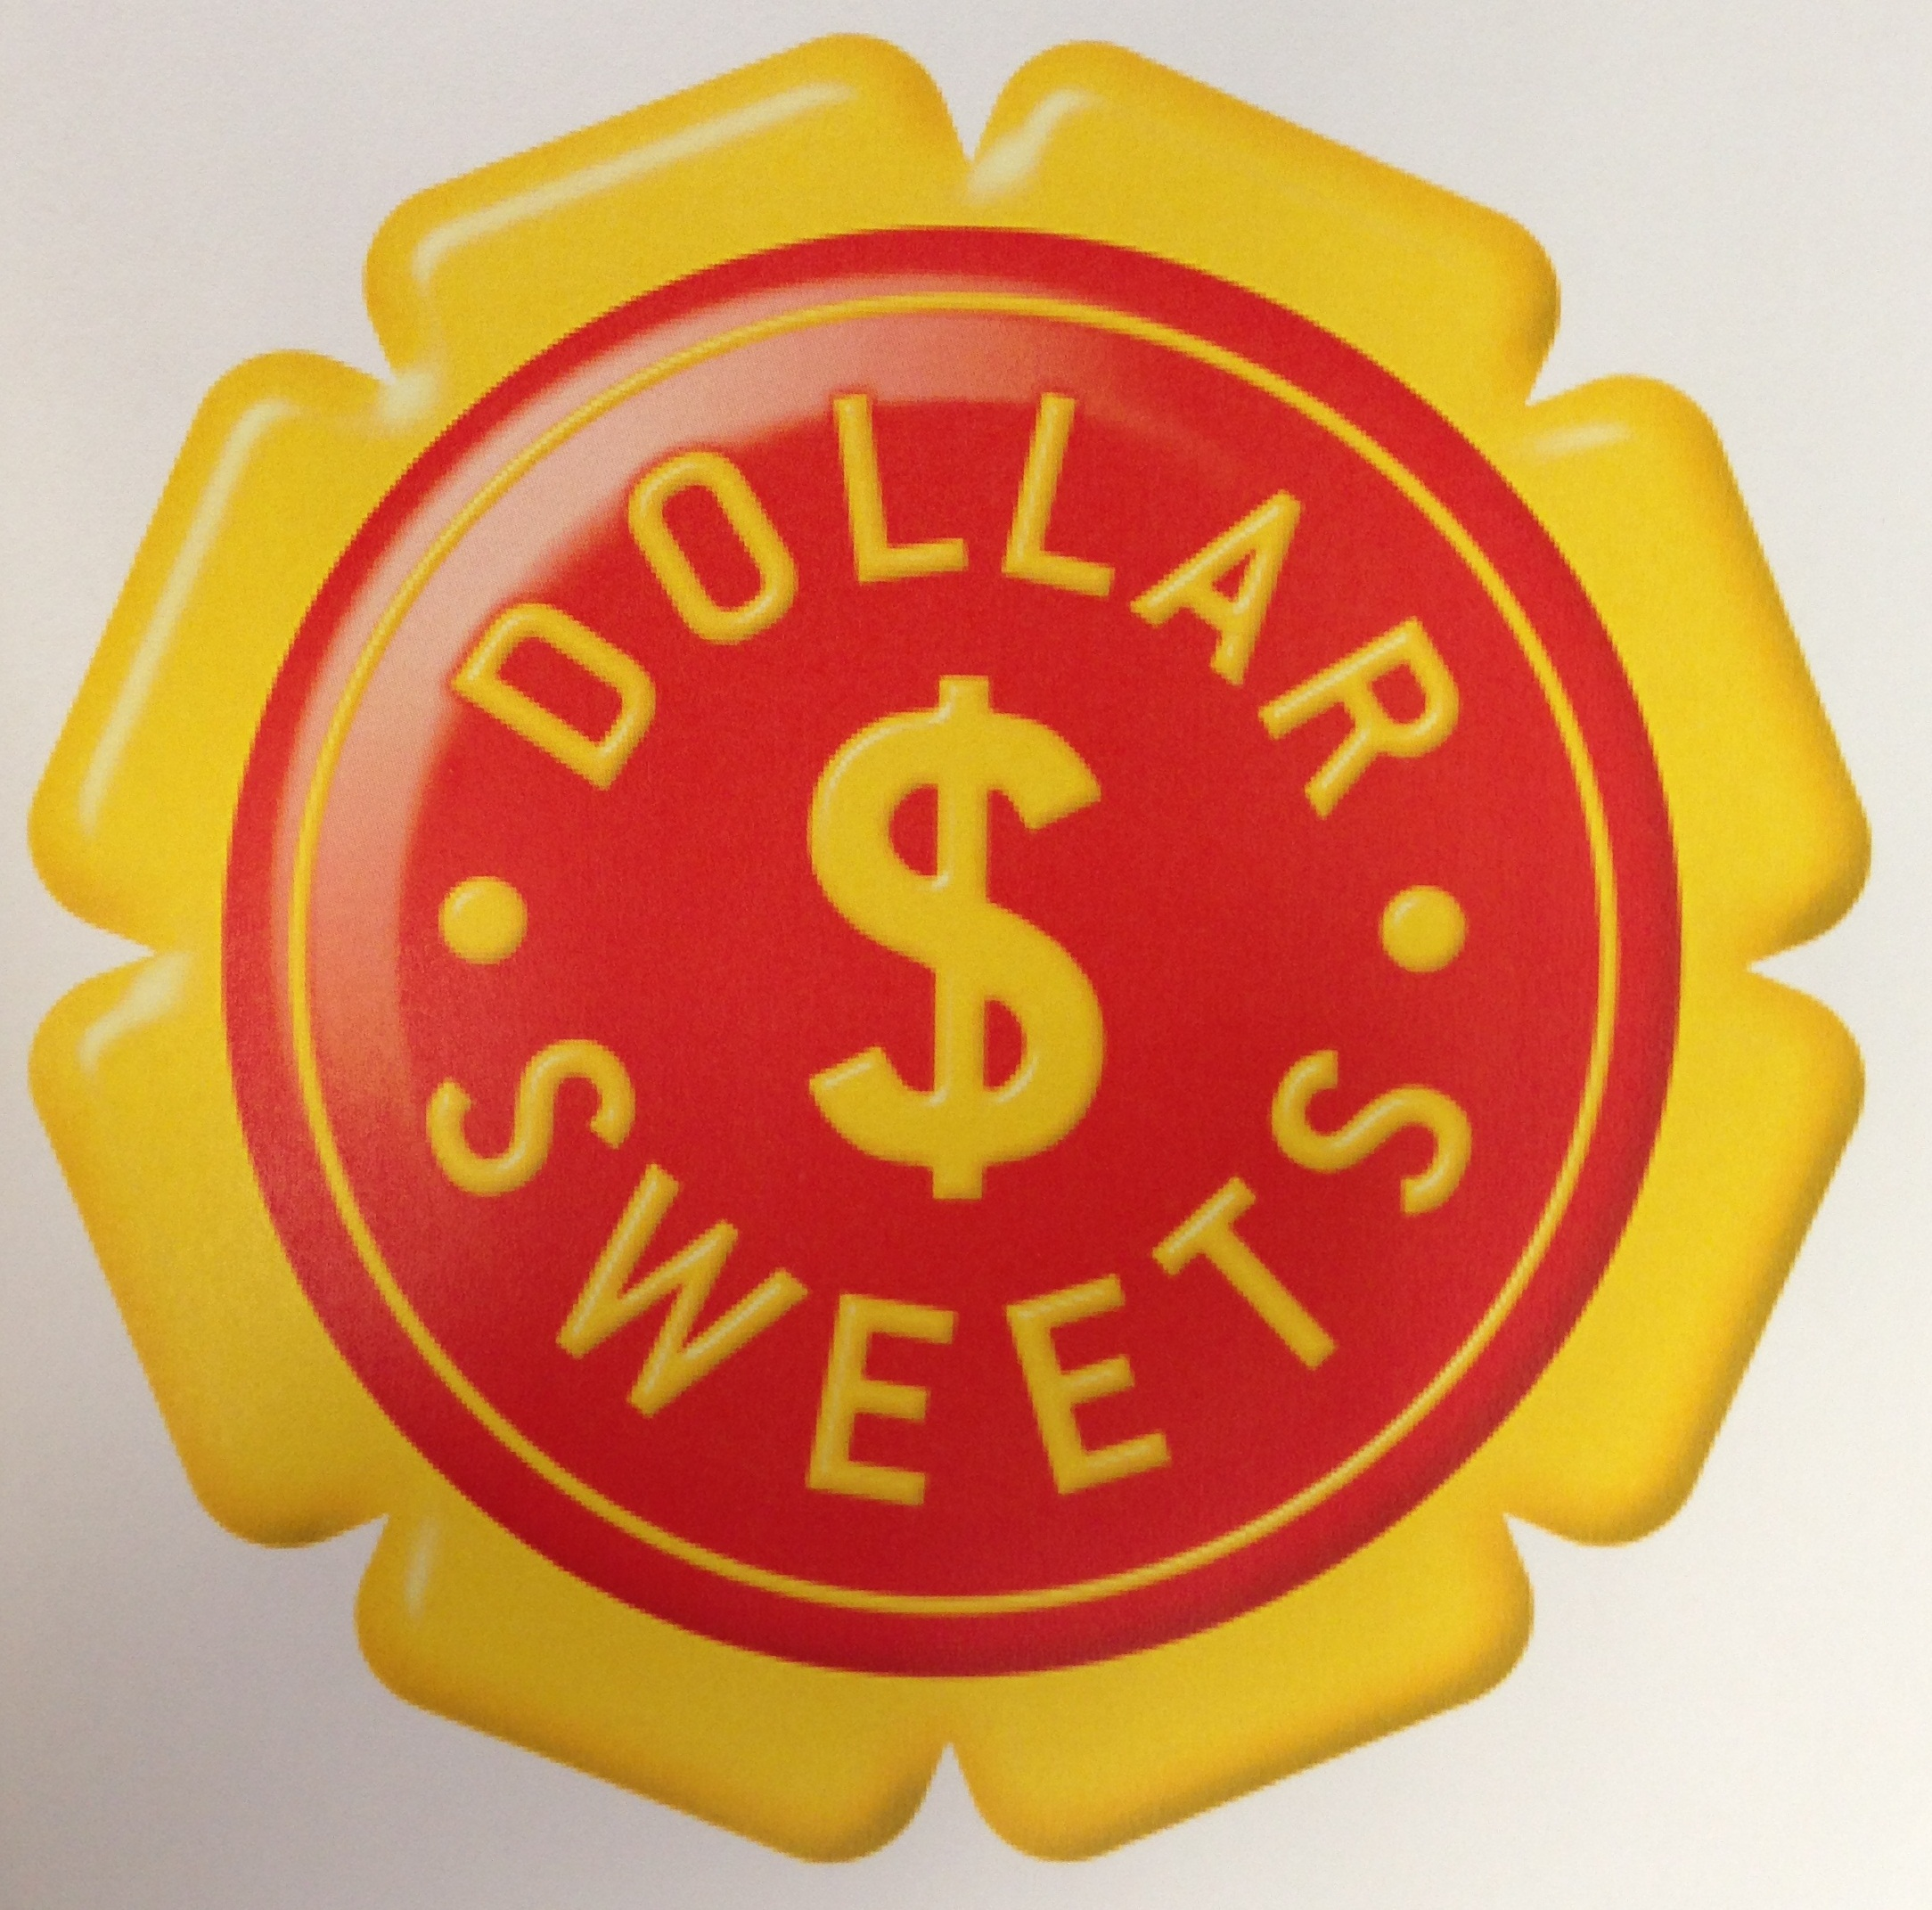 Dollar Sweets Company Pty Ltd